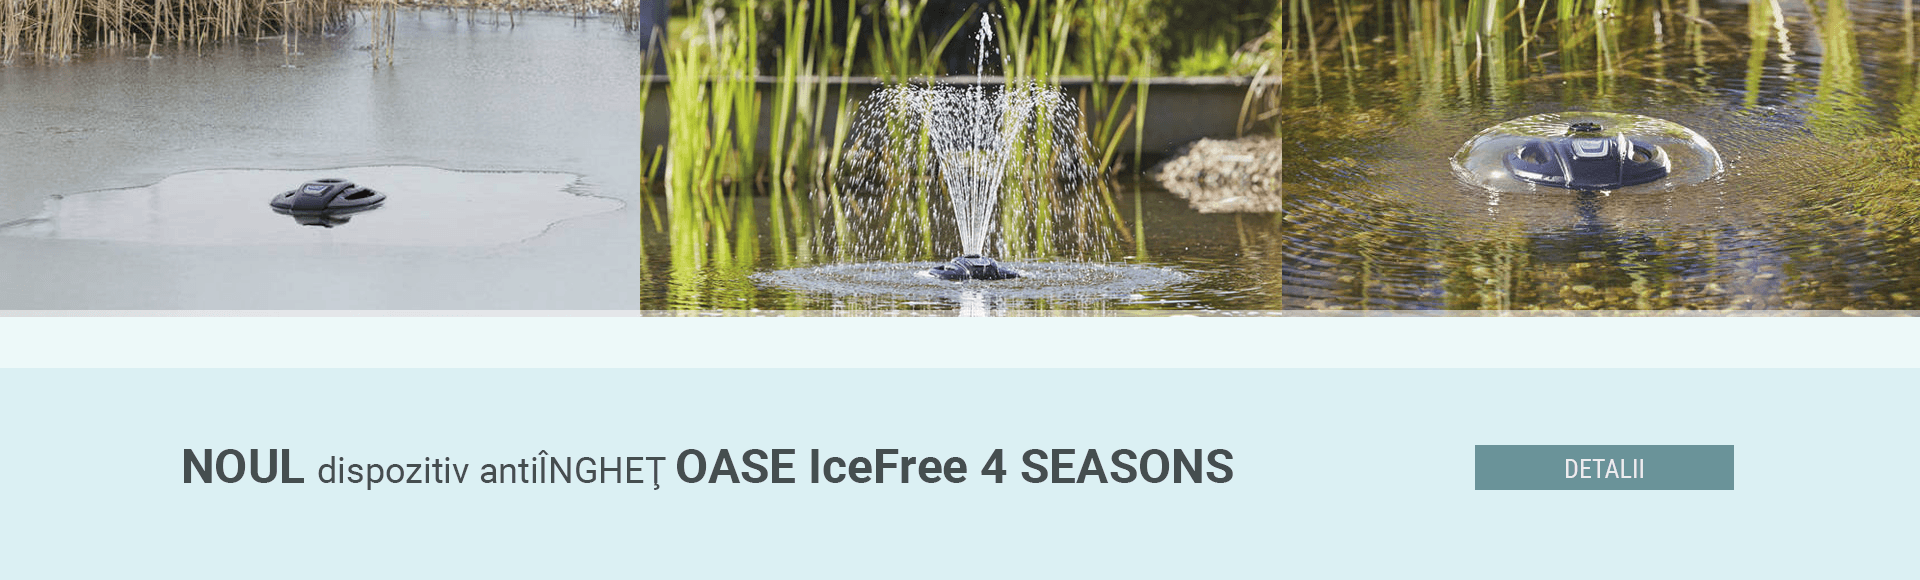 Dispozitiv anti inghet Oase IceFree 4 seasons